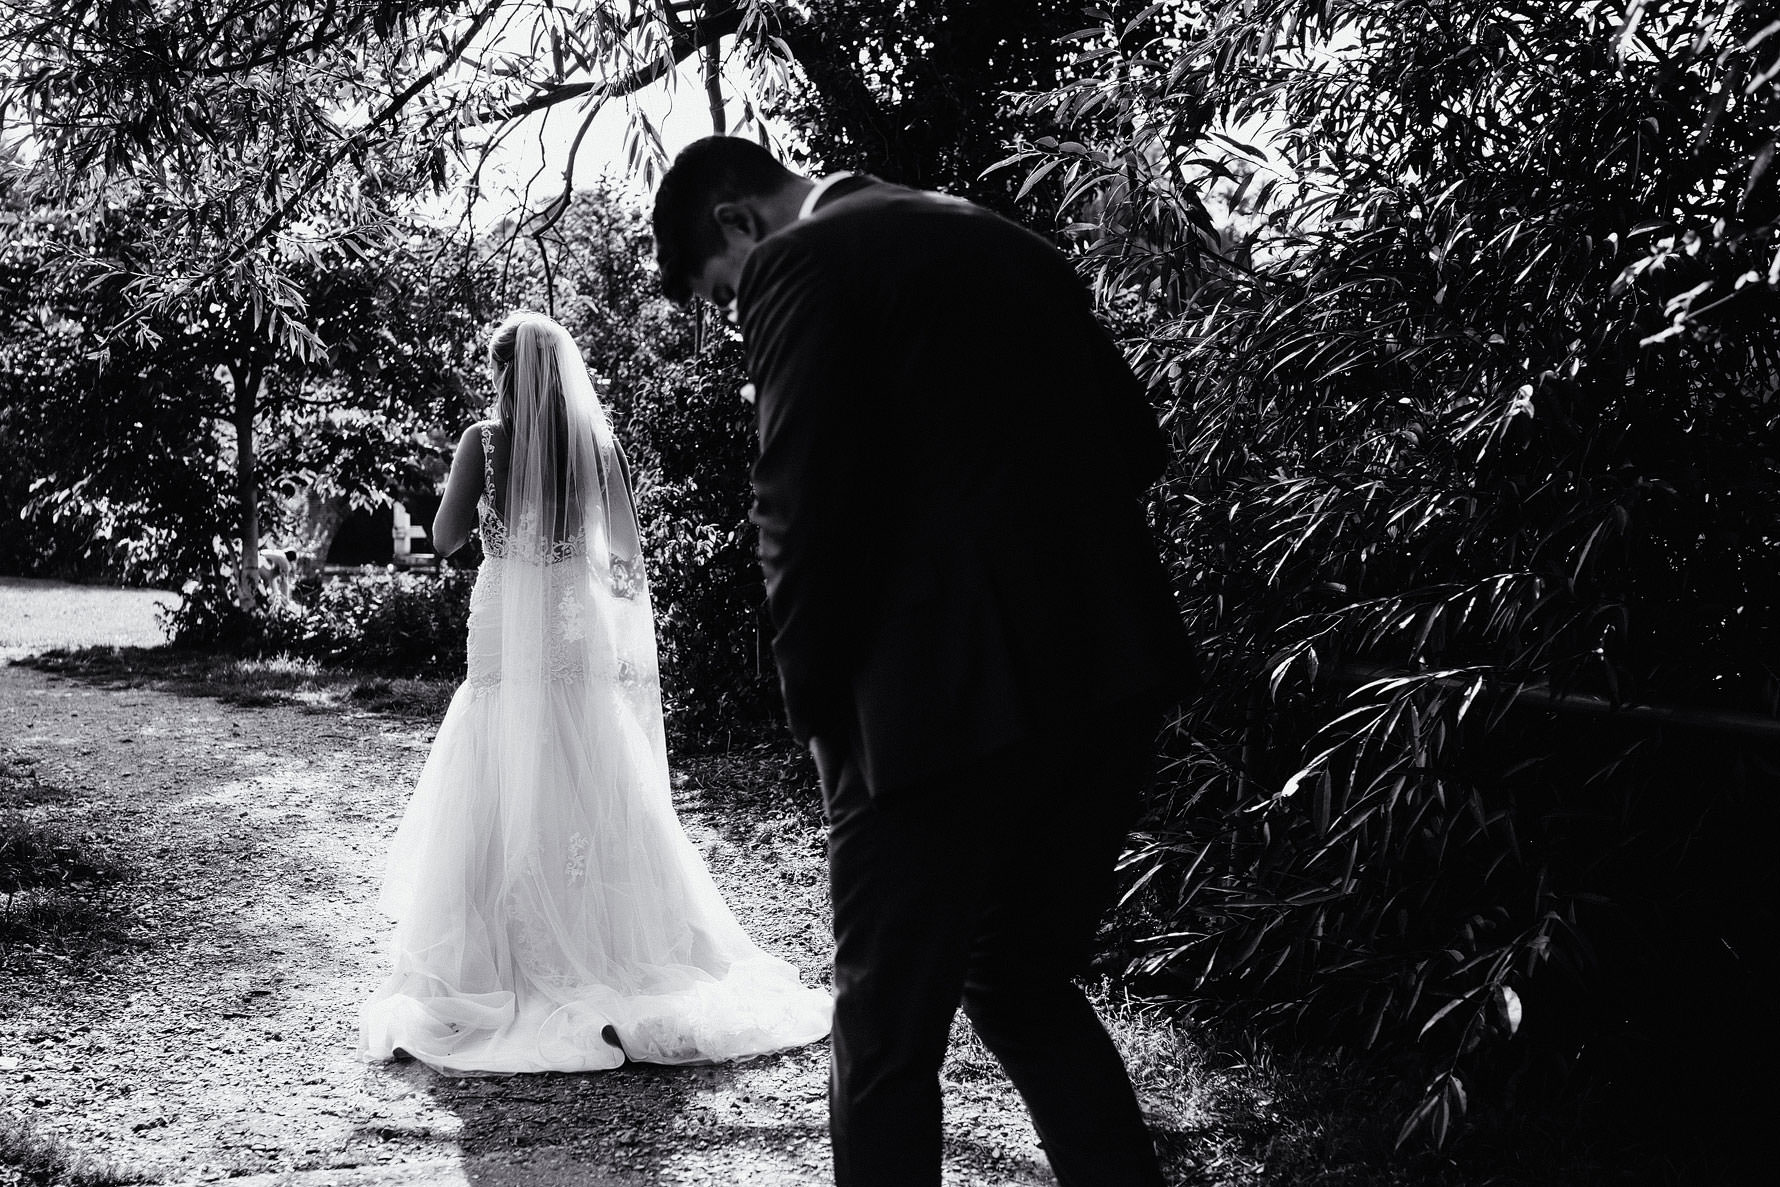 a nice image of the back of a wedding dress